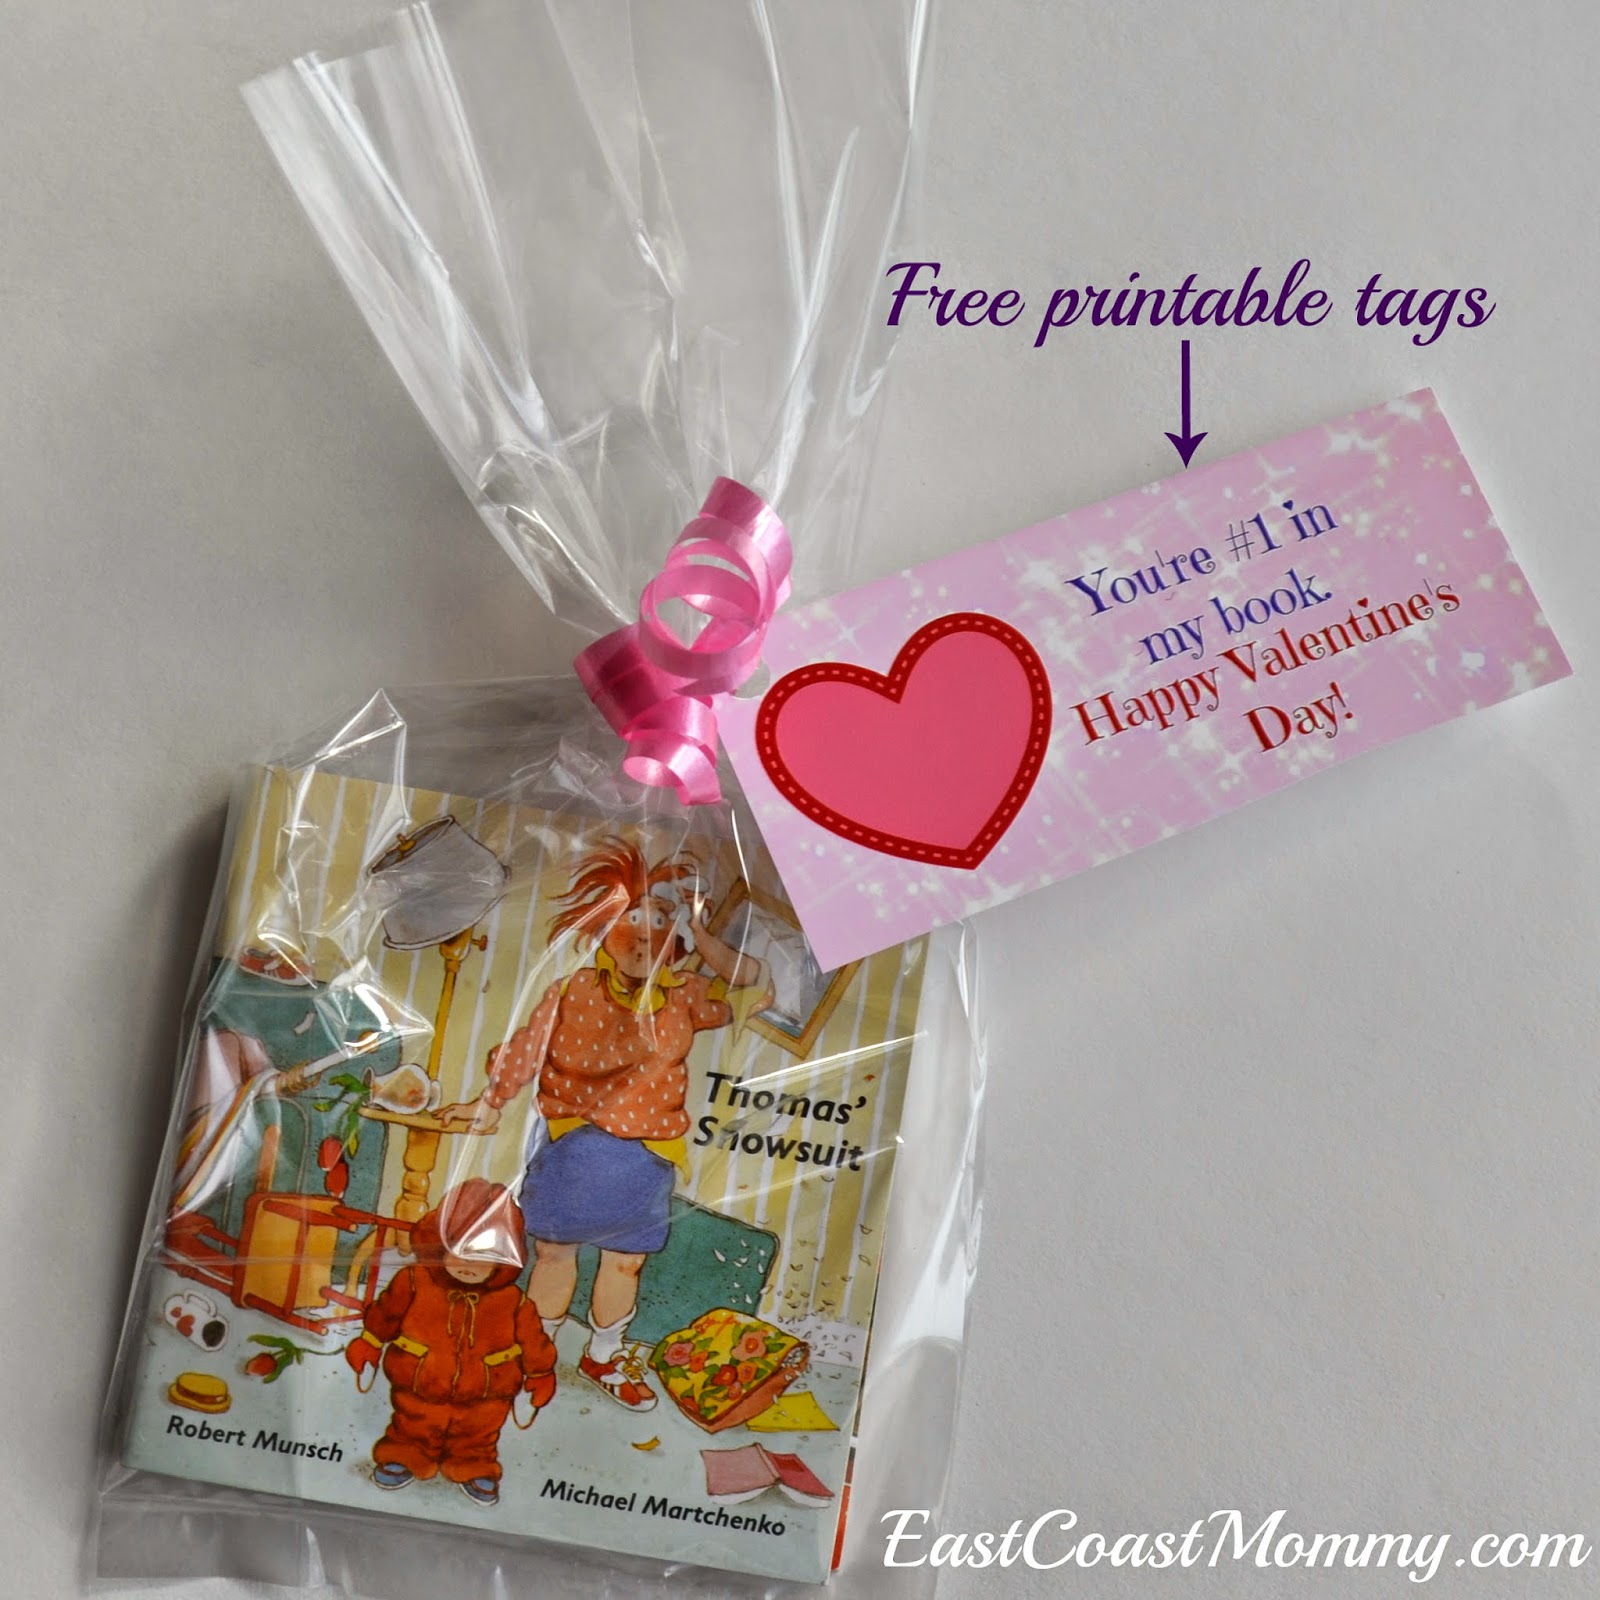 East Coast Mommy: Book Valentine {With Free Printable Tags} - Free Printable Valentine Books